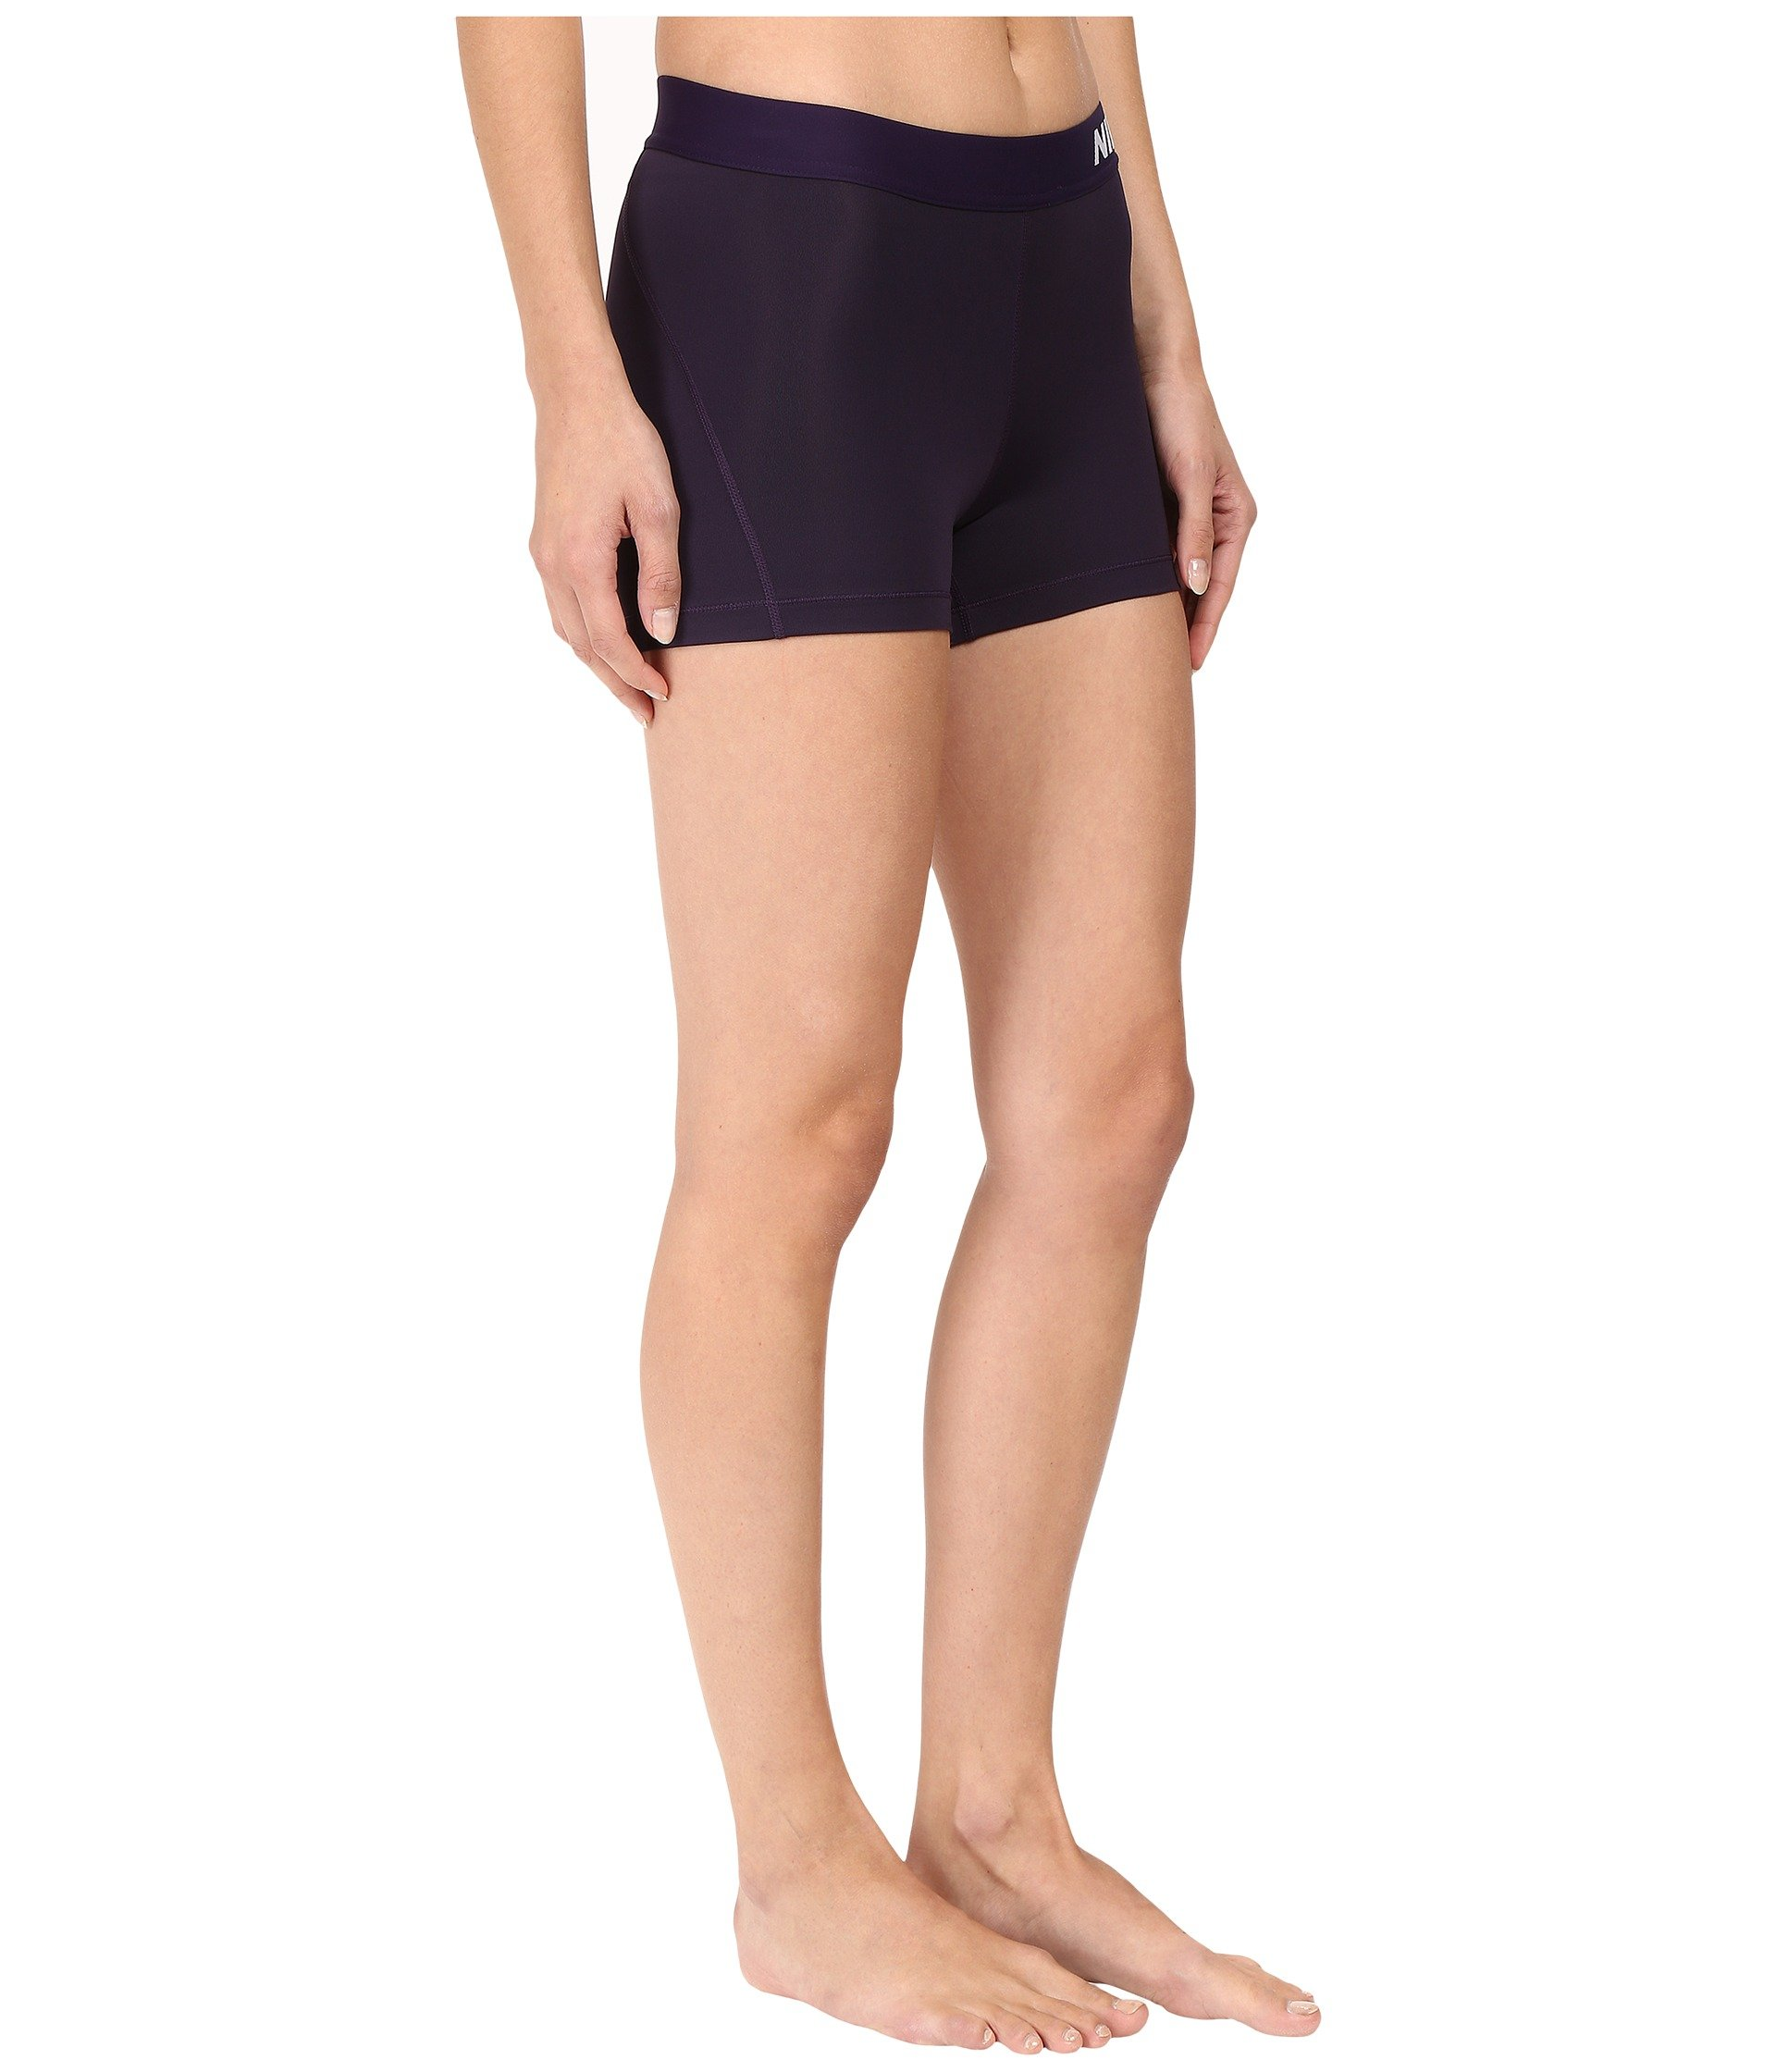 Nike Women's Pro Cool 3-Inch Training Shorts (Purple Dynasty/Bleached Lilac/X-Small) by Nike (Image #5)